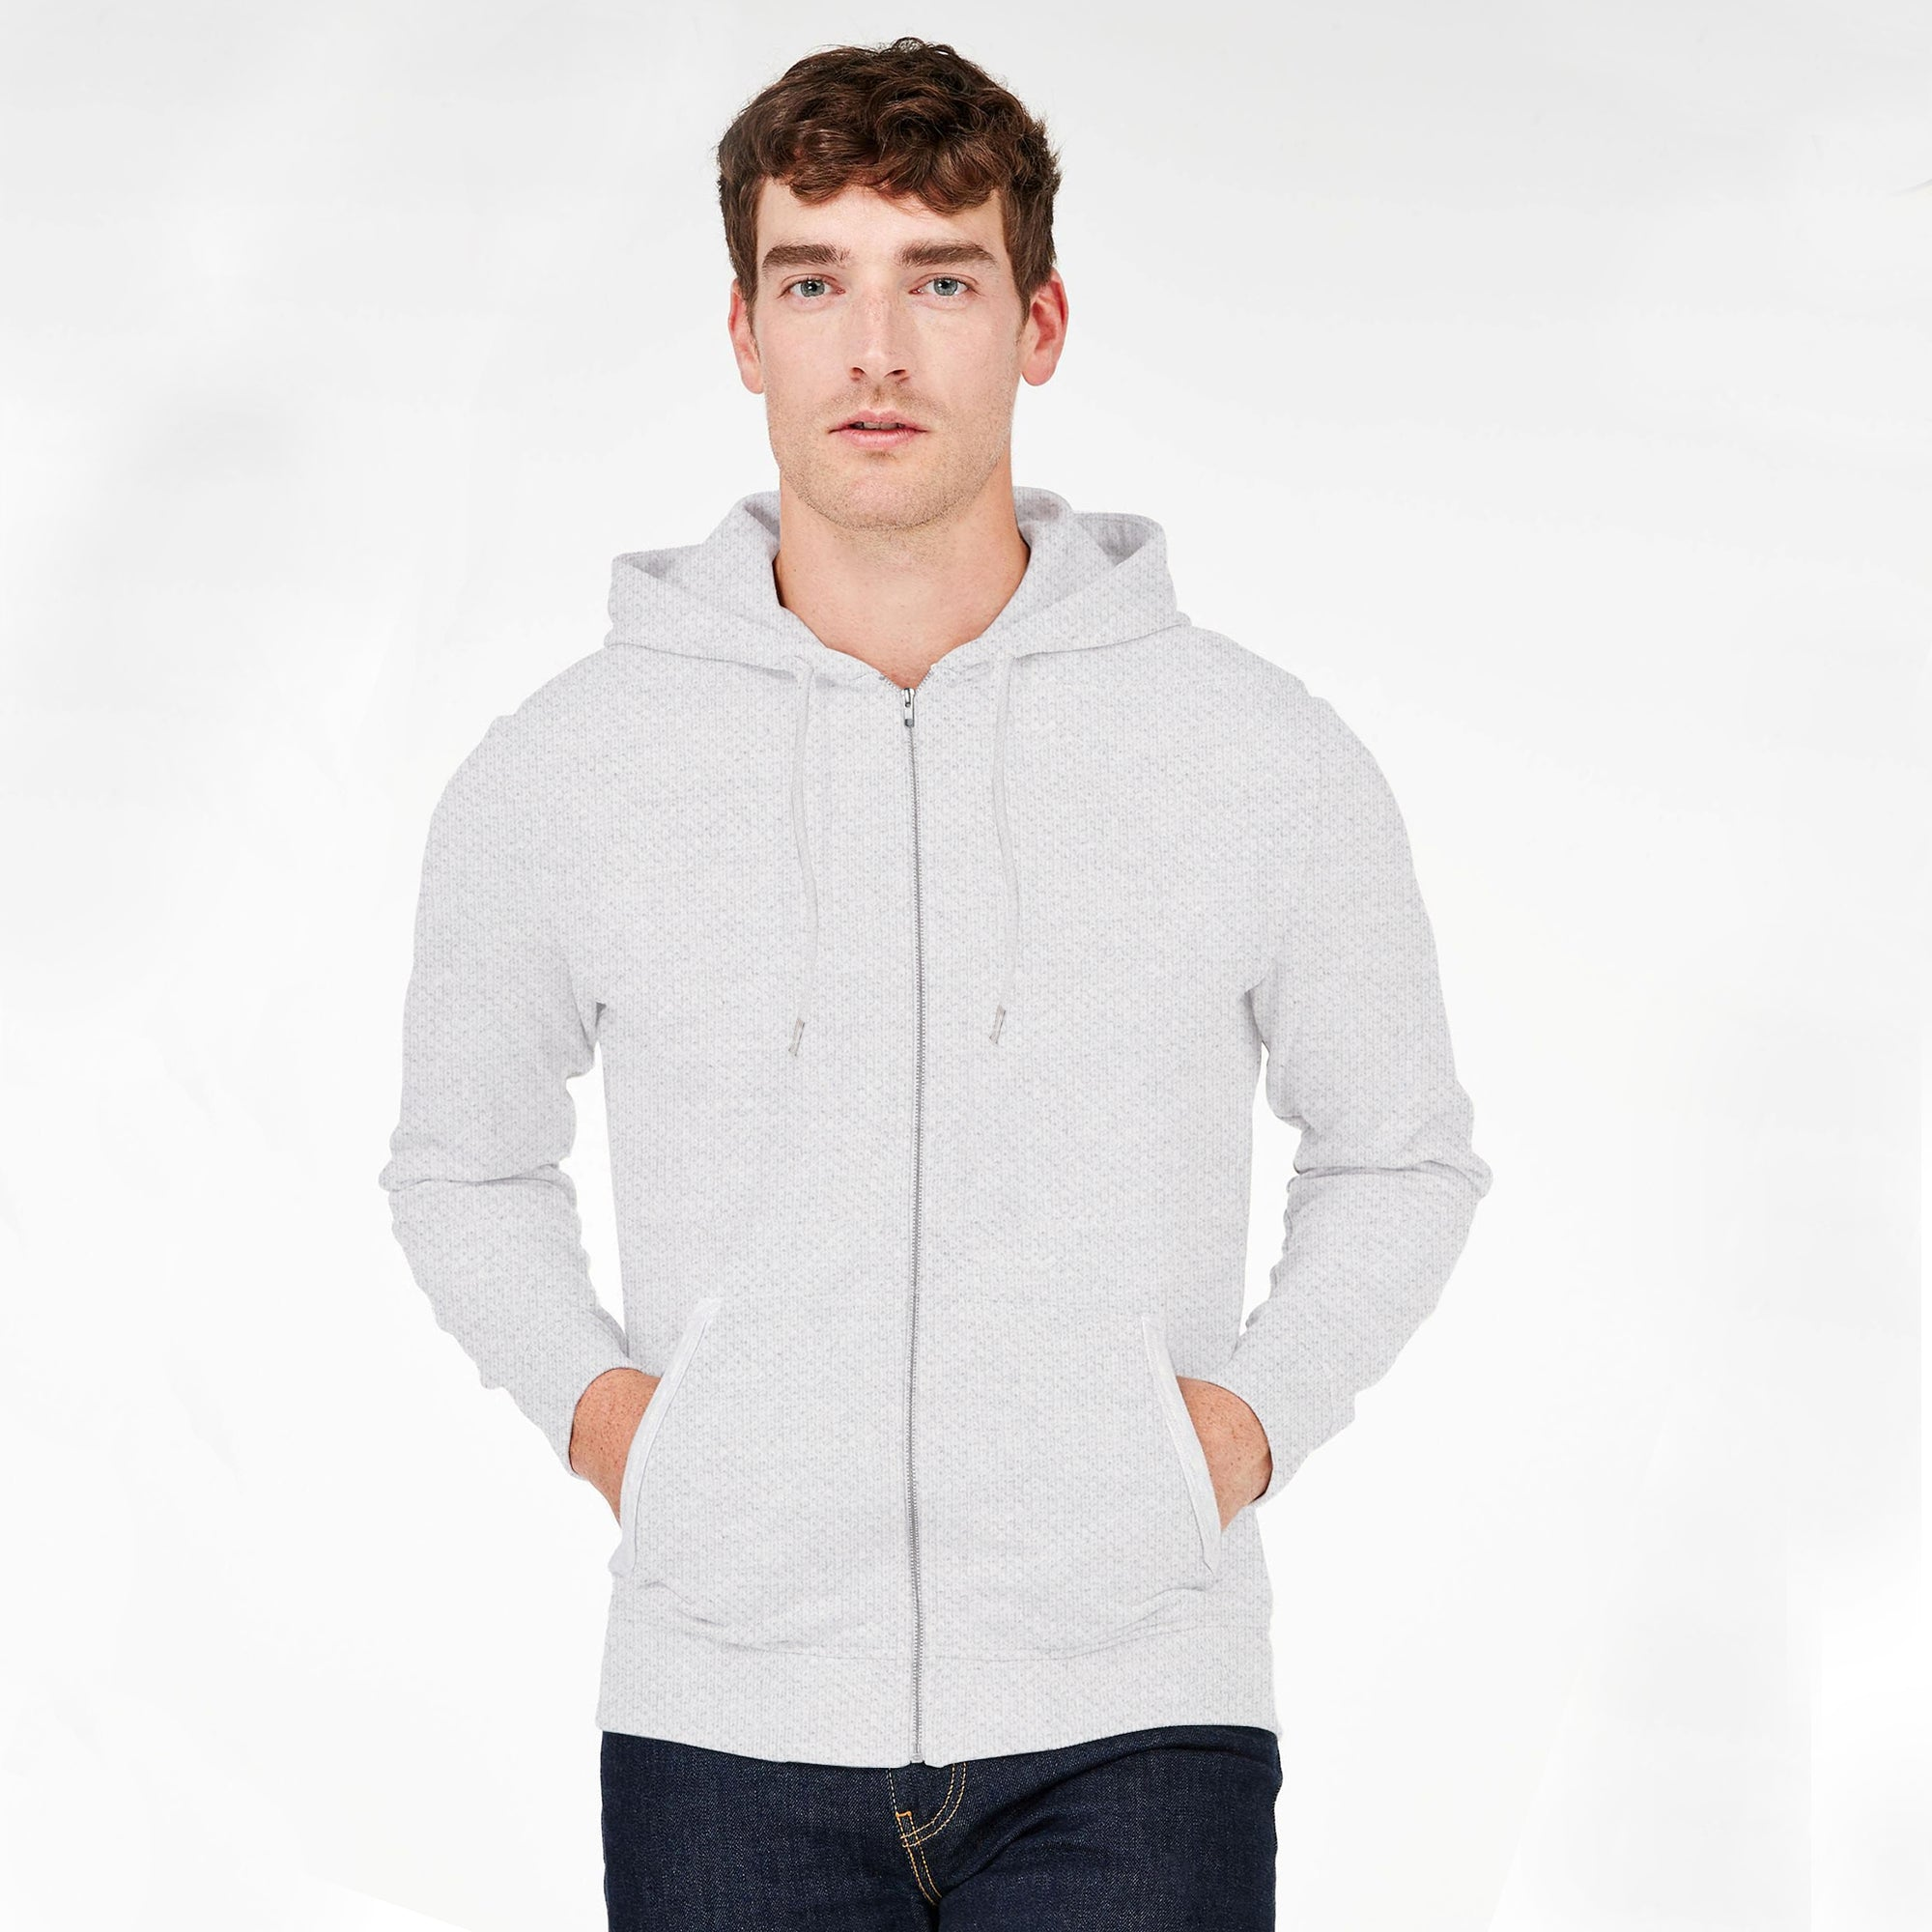 a141c20ca M&S P.Q Terry Full Zipper Hoodie For Men-Grey-BE6199 - BrandsEgo